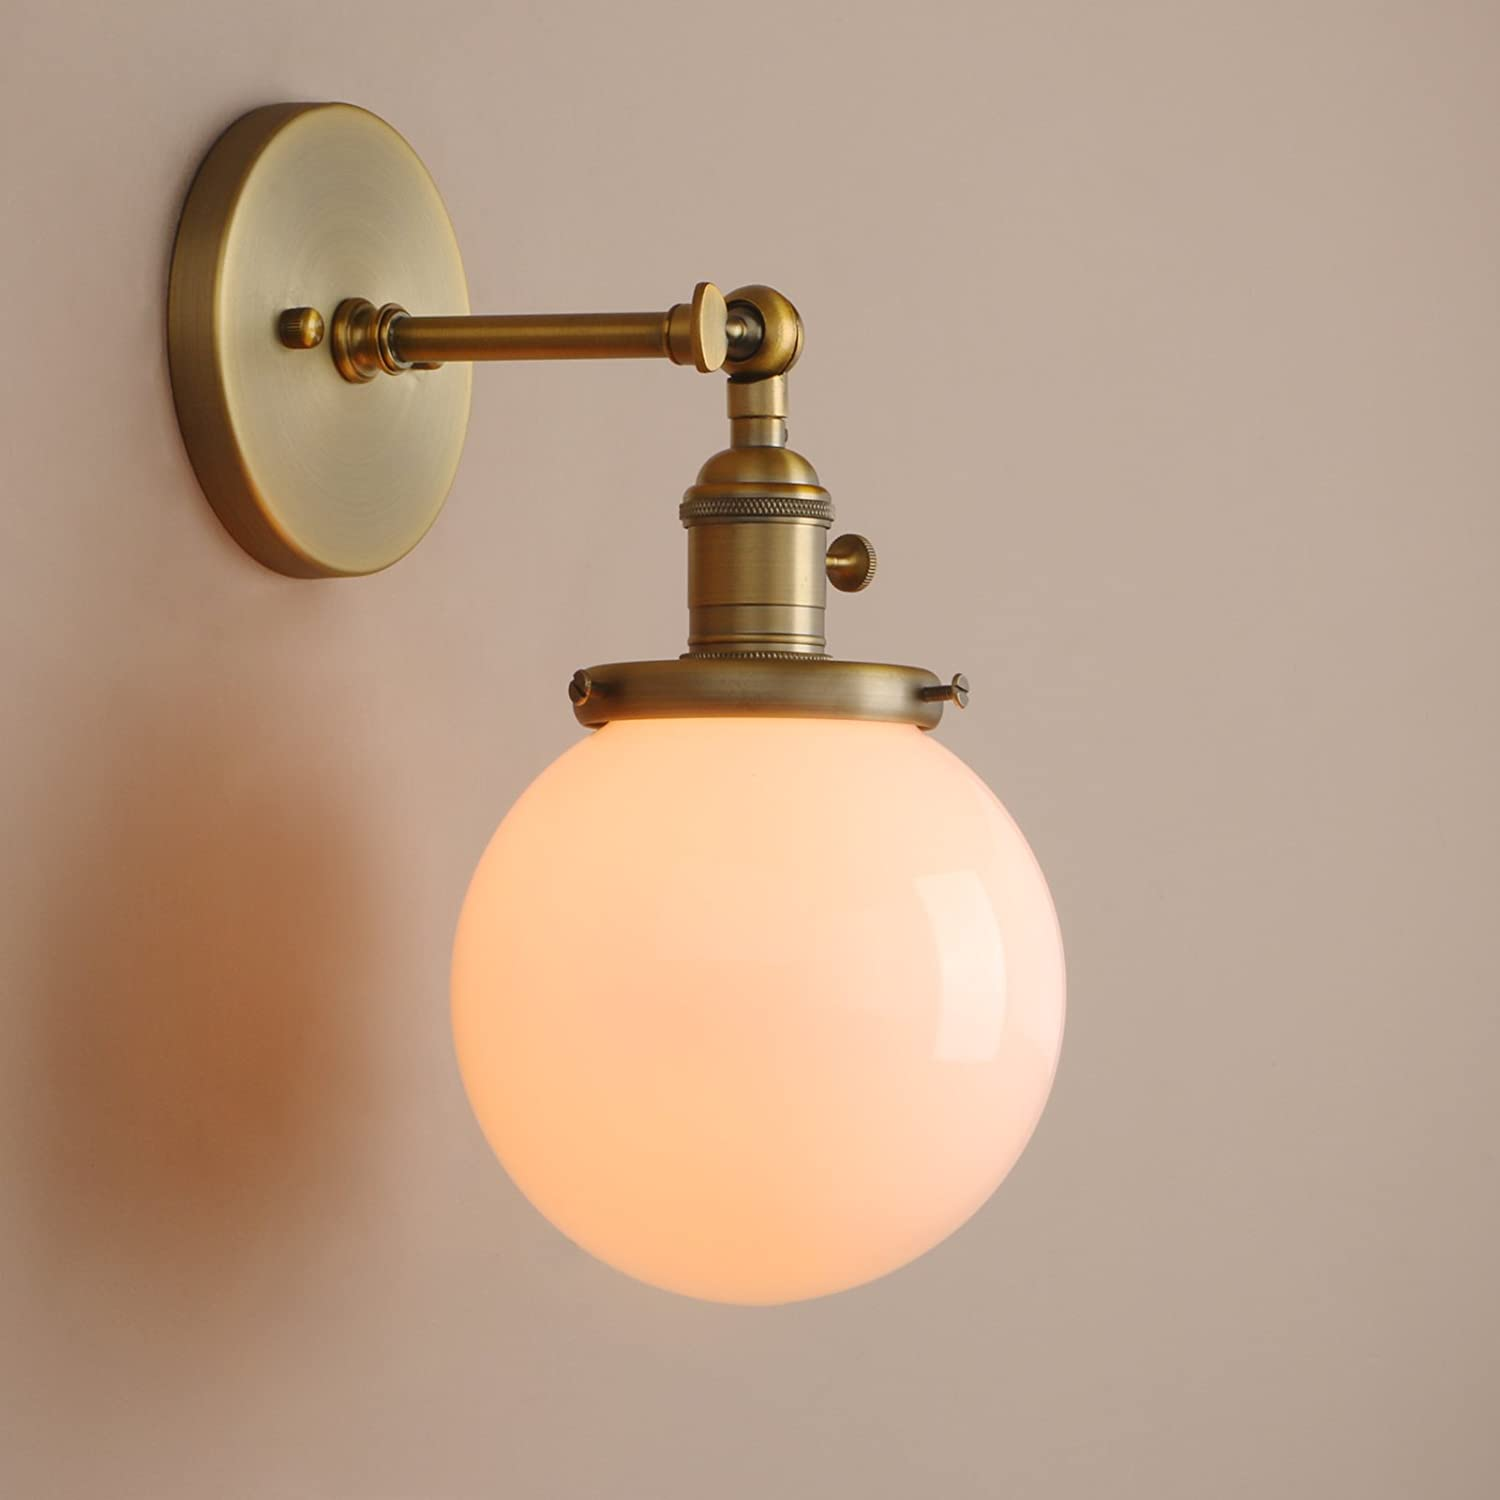 Pathson Industrial Wall Sconce with White Globe, Brass Bathroom Vanity Light with On Off Switch, Vintage Wall Light Fixtures for Living Room Loft Hallway